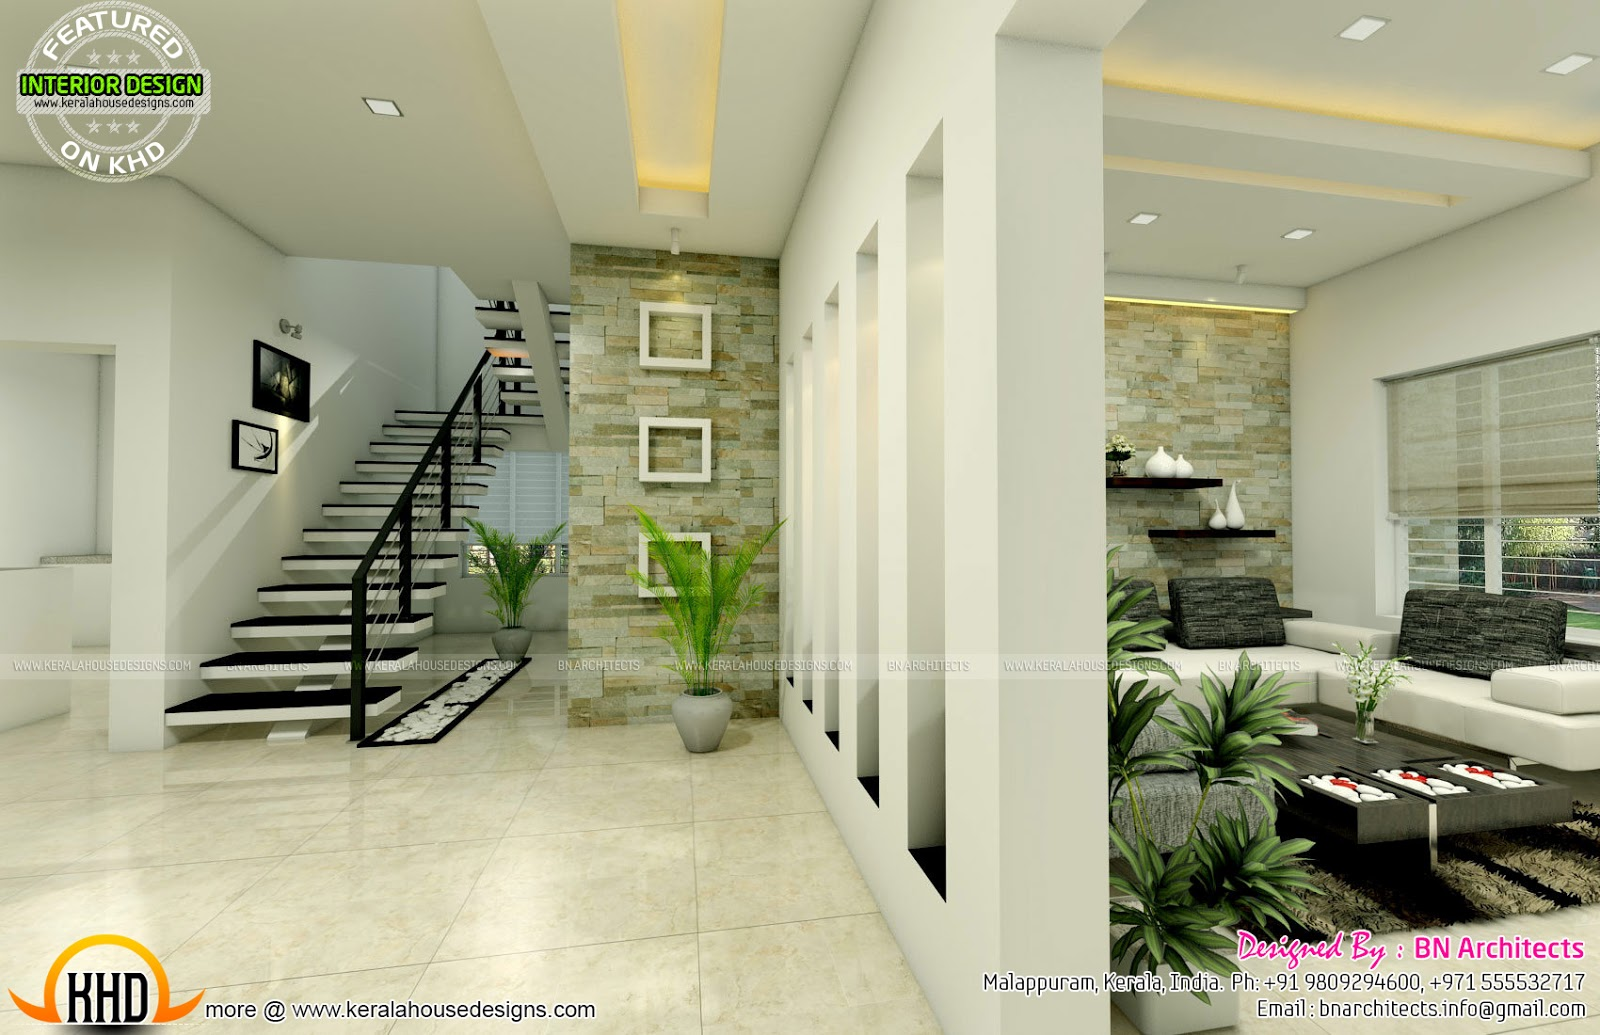 Ground Floor Elevation With Staircase : All in one house elevation floor plan and interiors